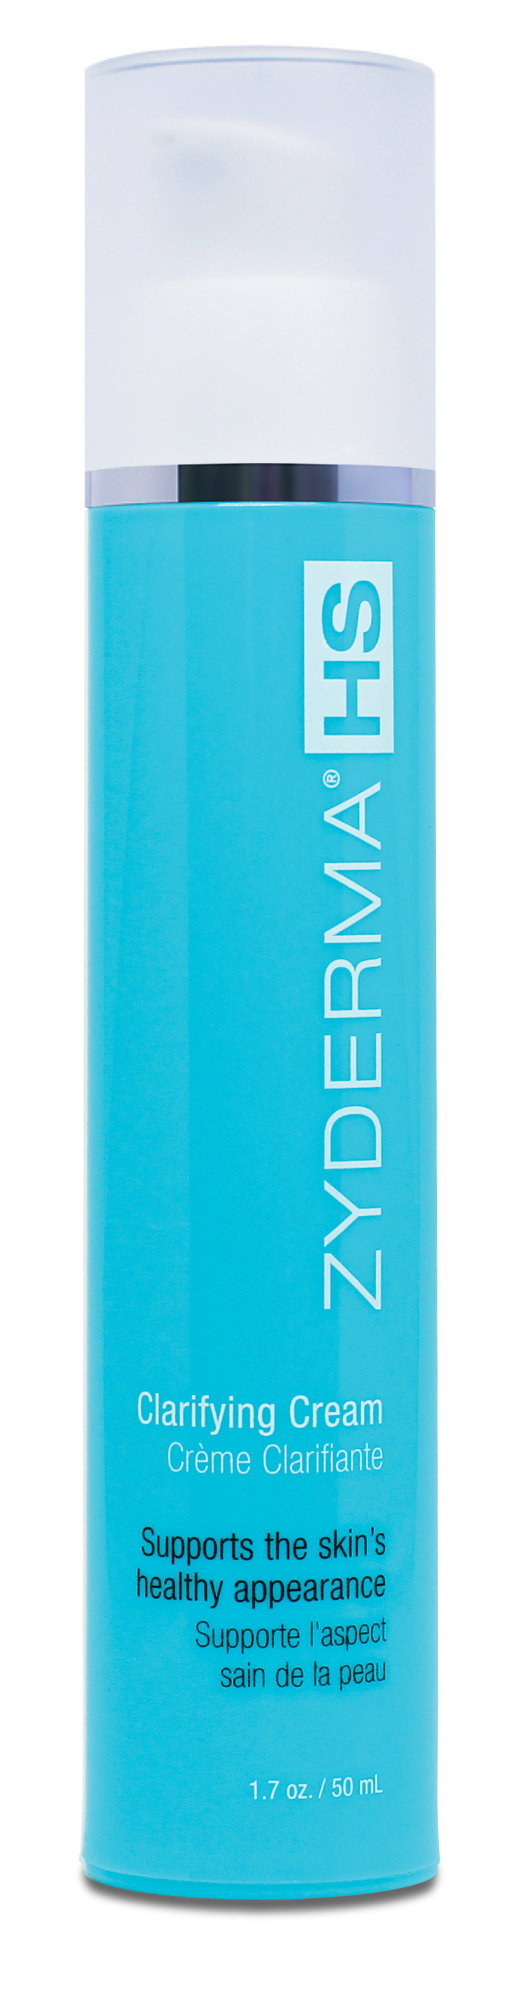 Zyderma Clarifying Cream - Lurra Wellness Inc.